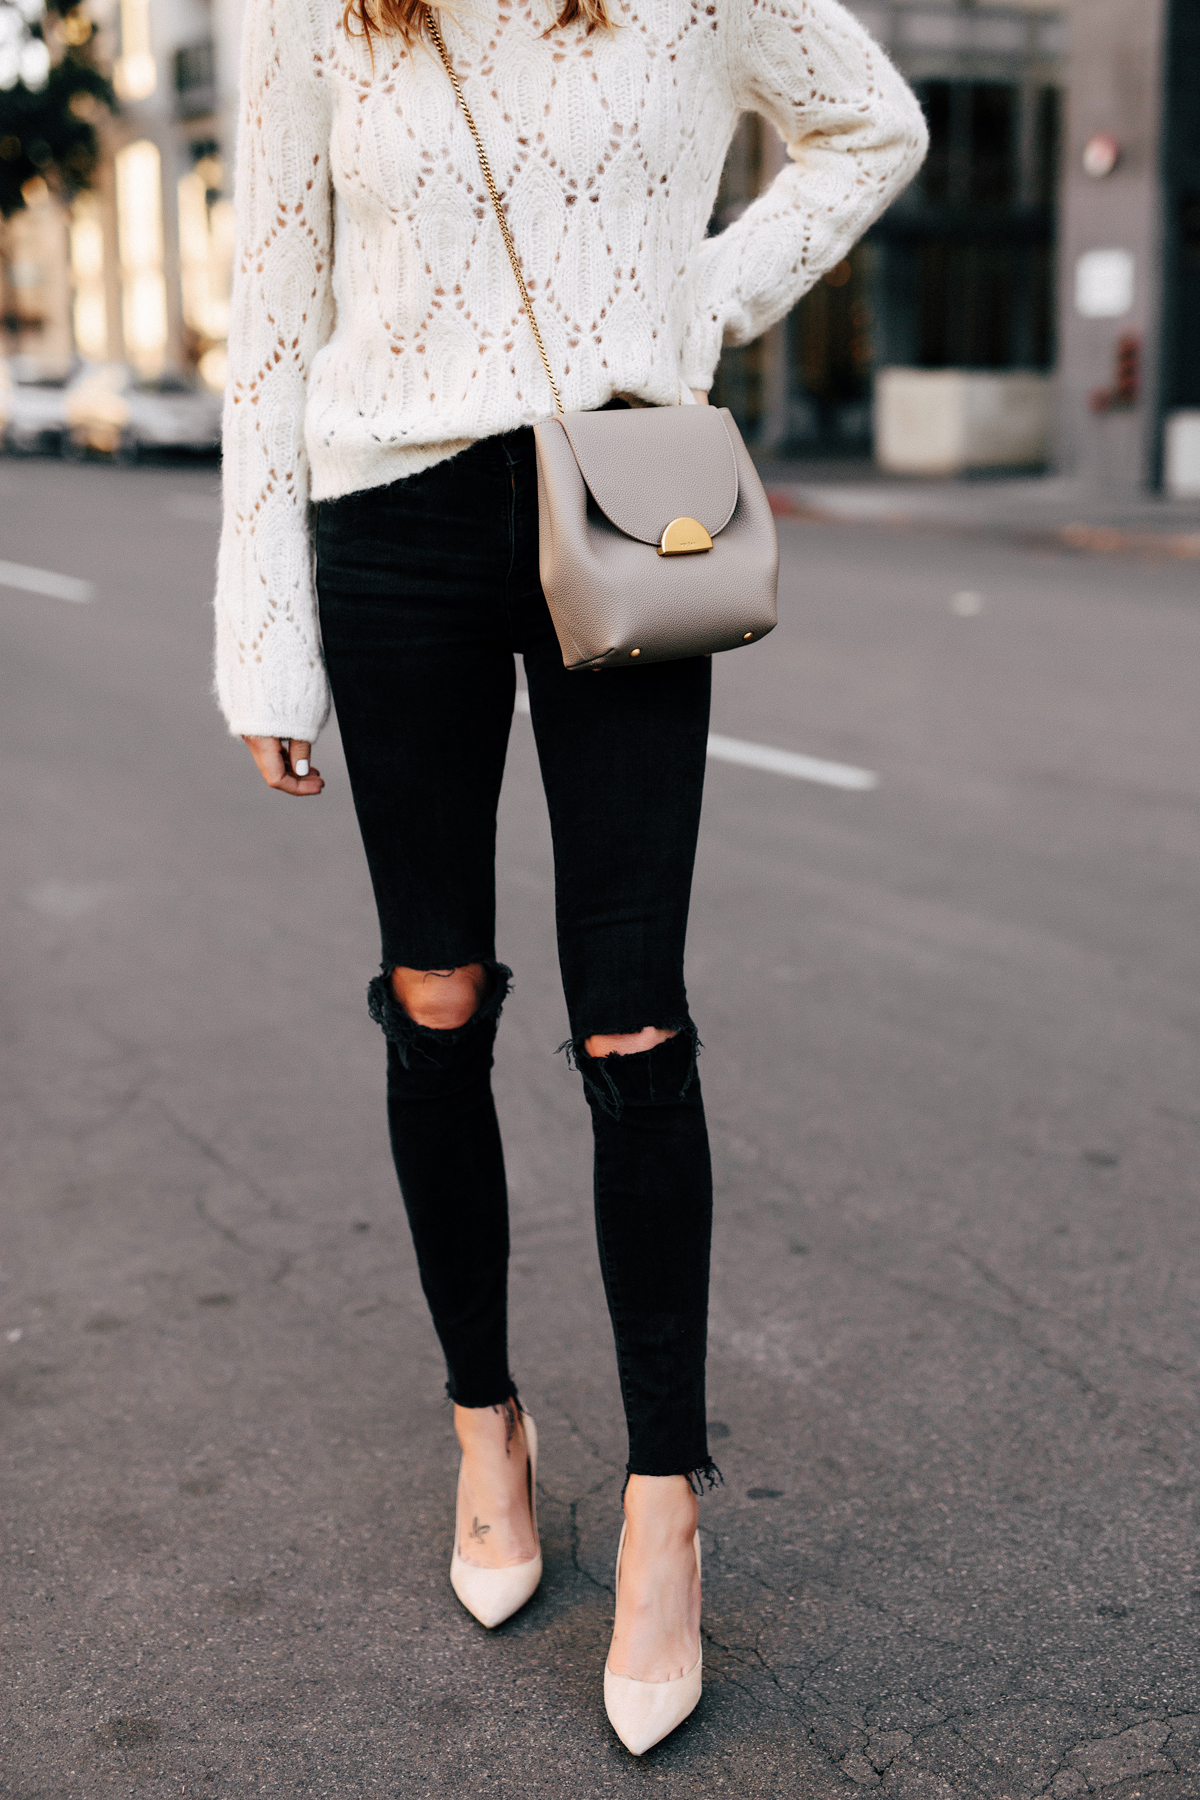 Woman Wearing White Pointelle Sweater Madewell Black Ripped Skinny Jeans Nude Pumps Polene Grey Handbag Fashion Jackson San Diego Fashion Blogger Street Style